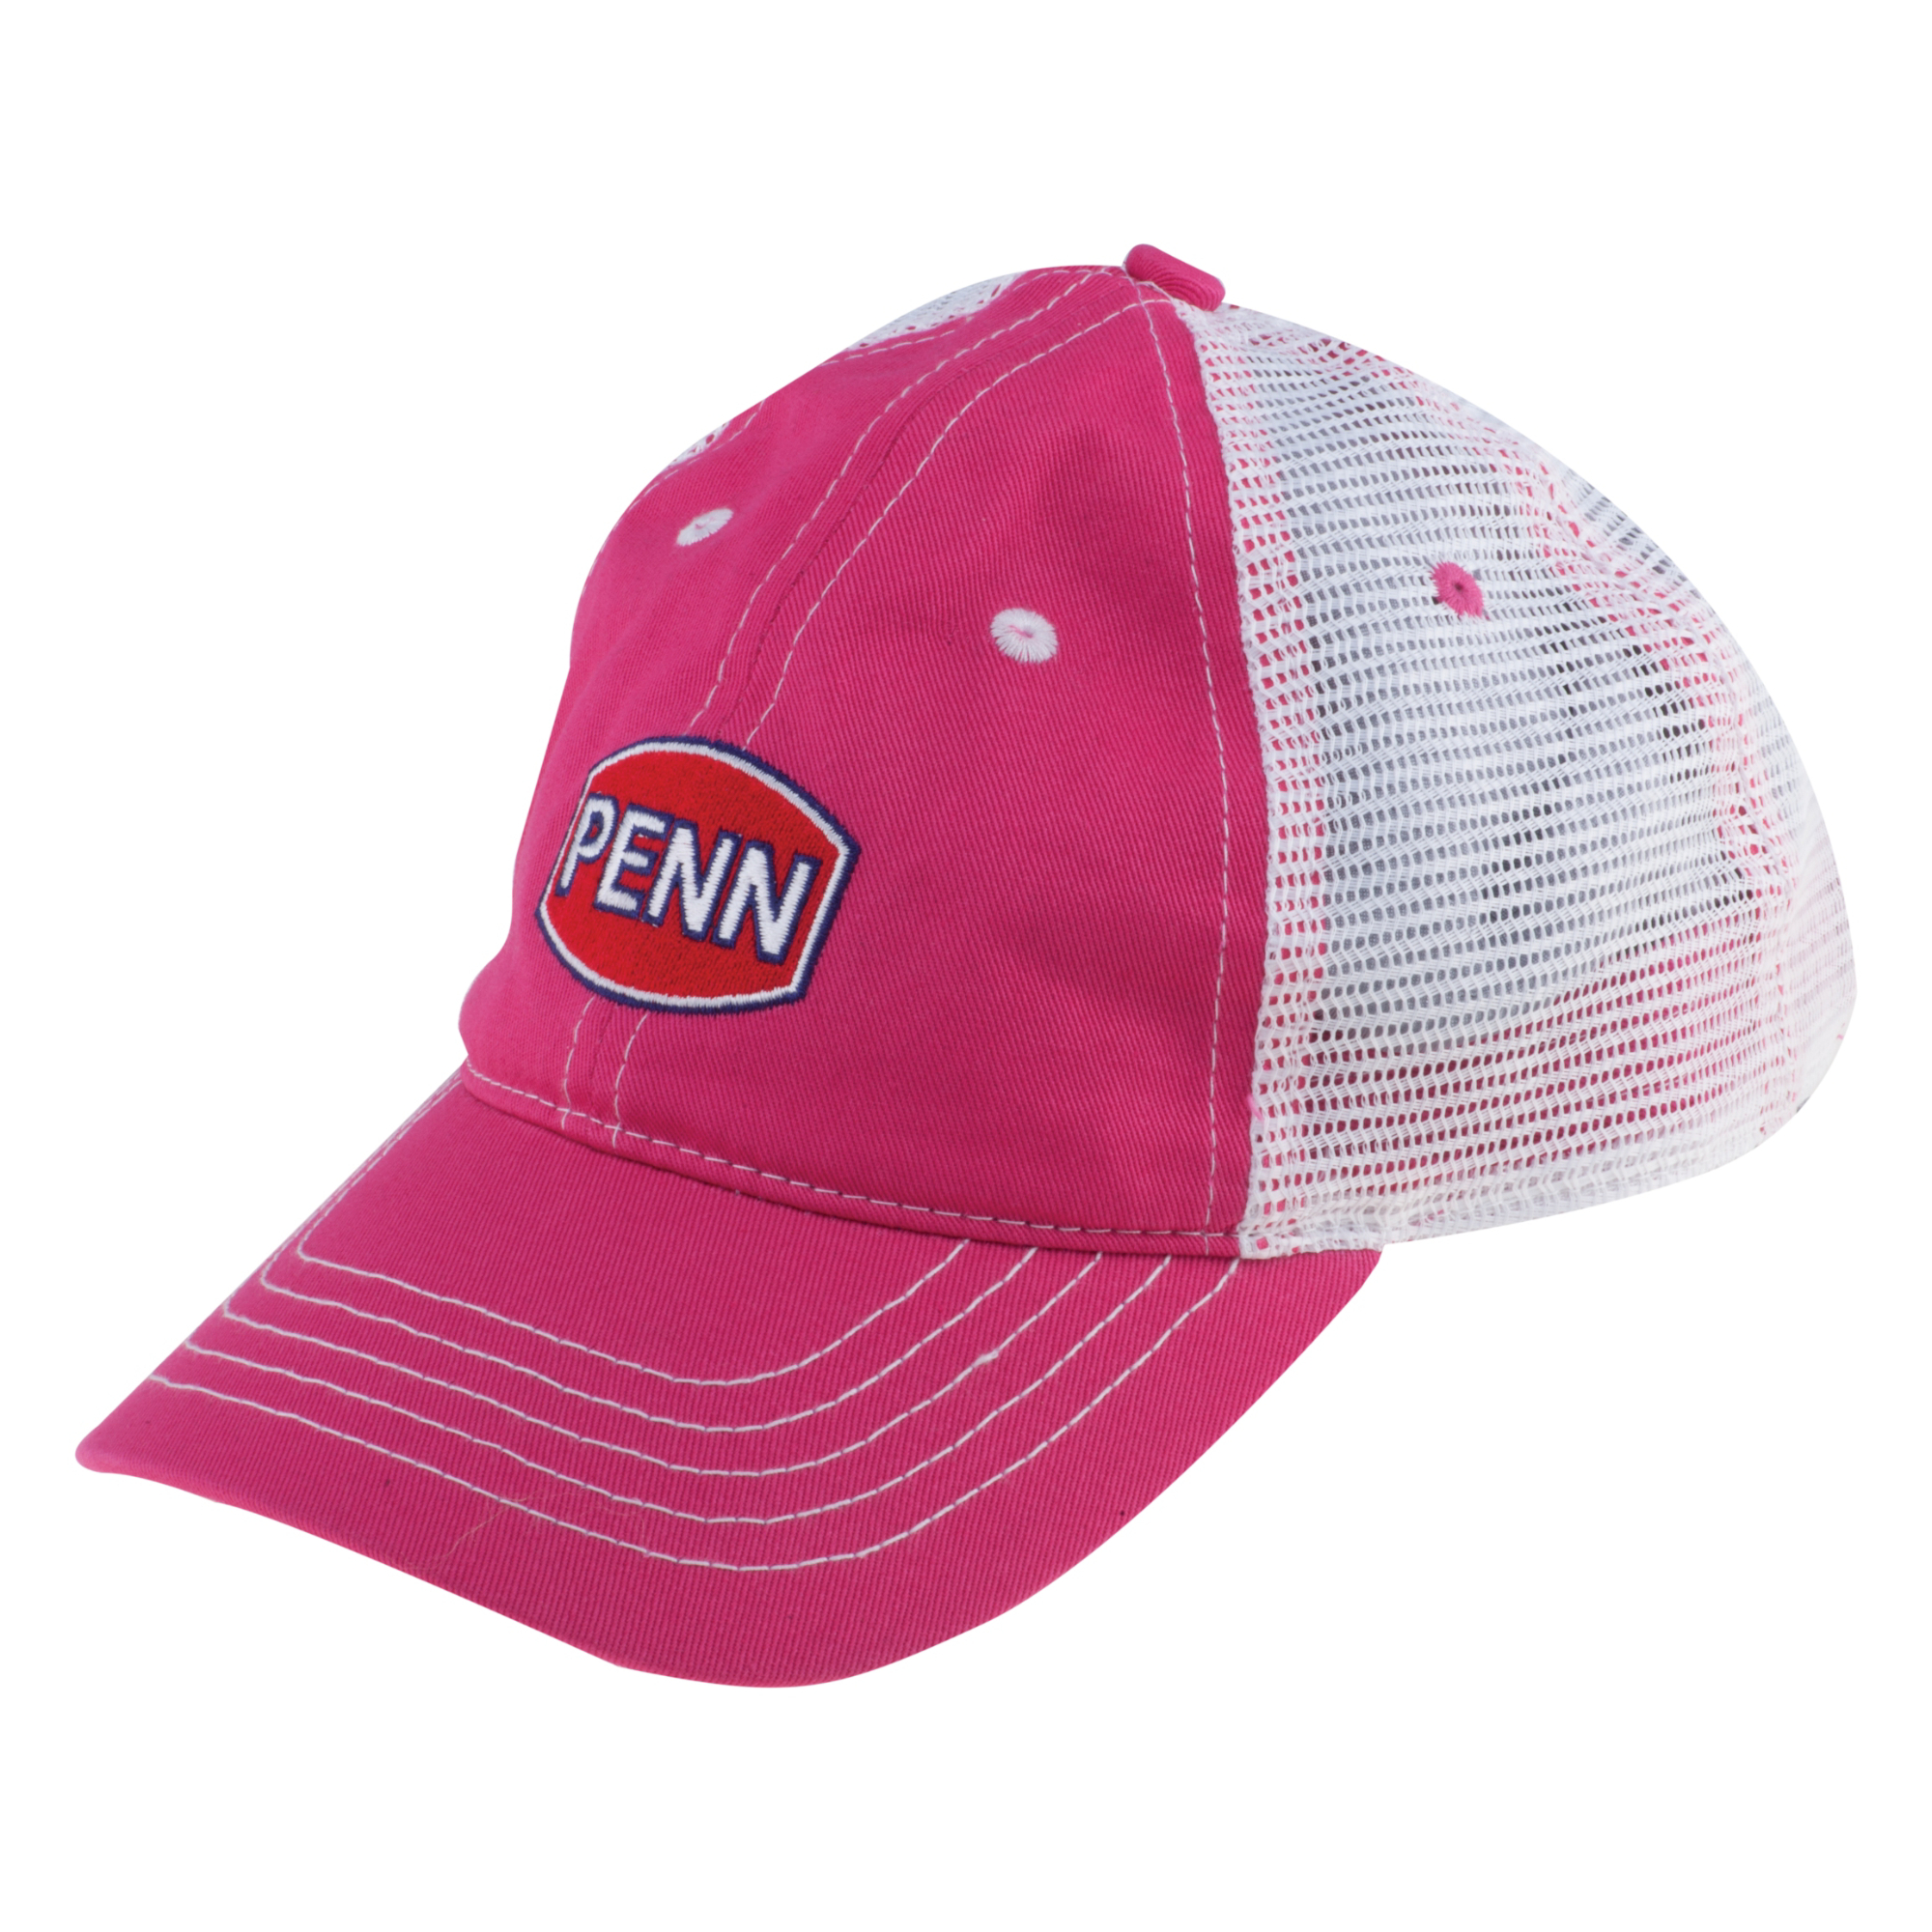 Penn fishing on shoppinder for High hat fish